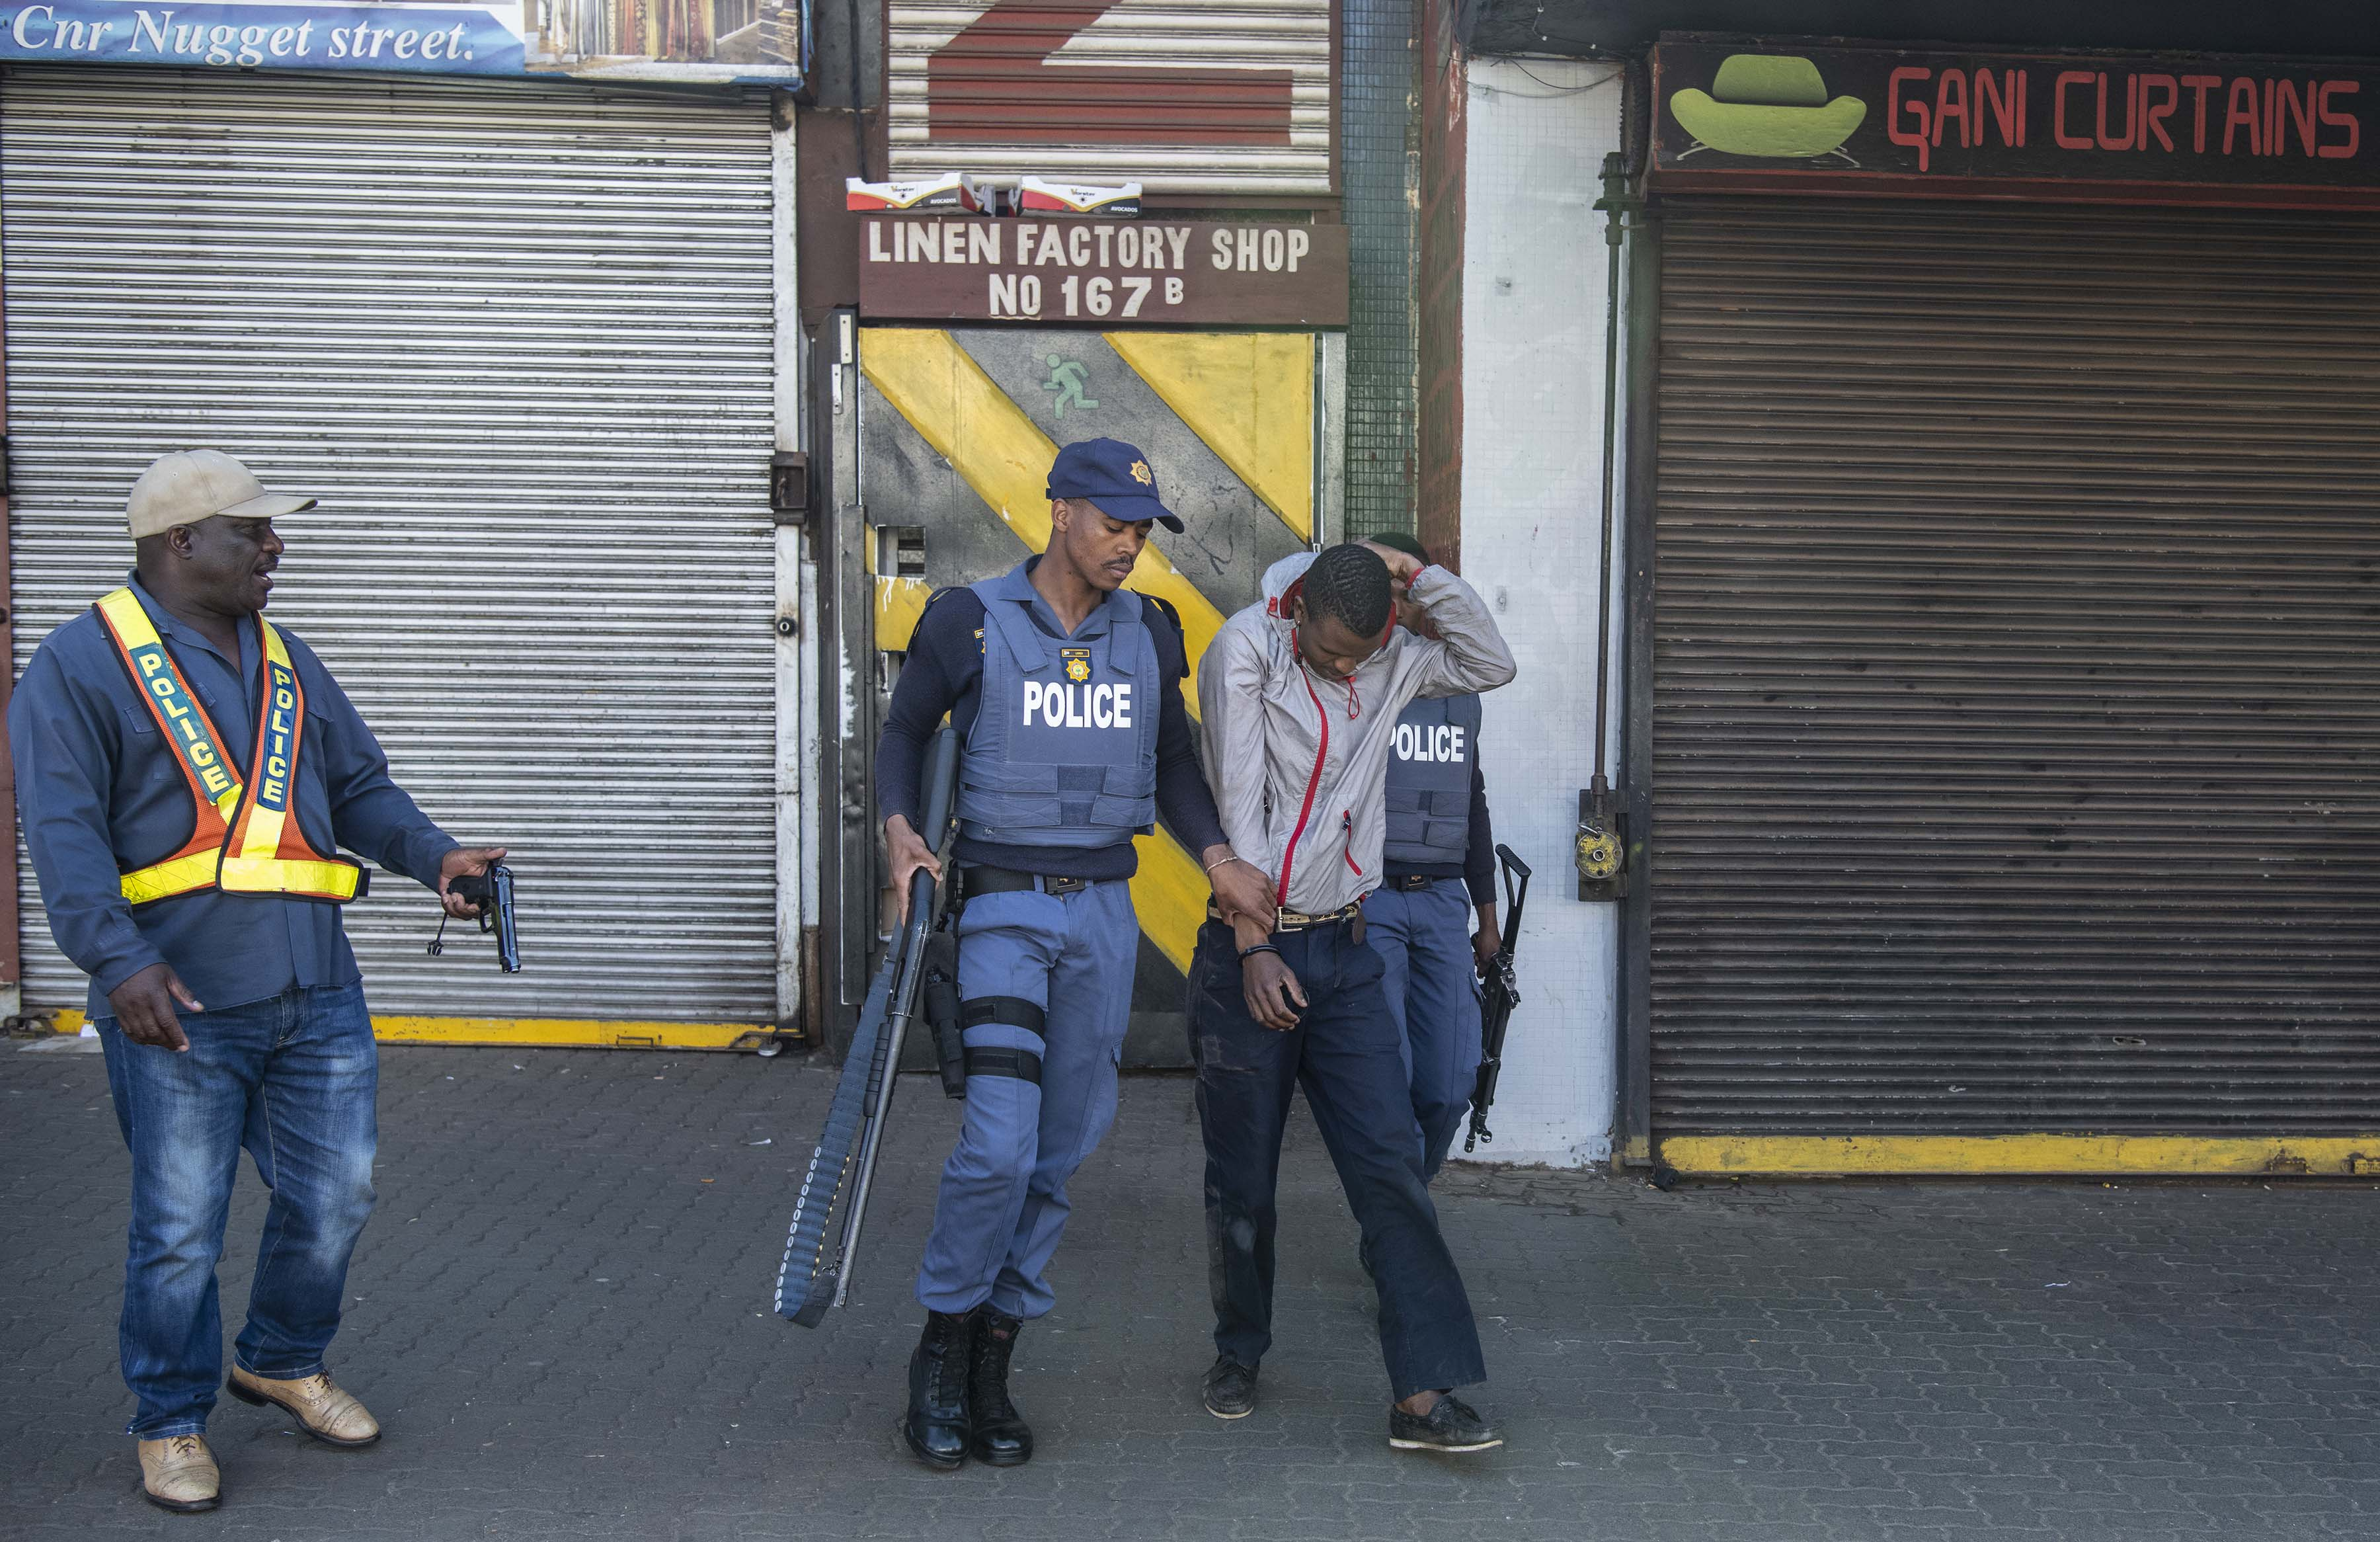 2 September 2019: The police making an arrest after the rampage.